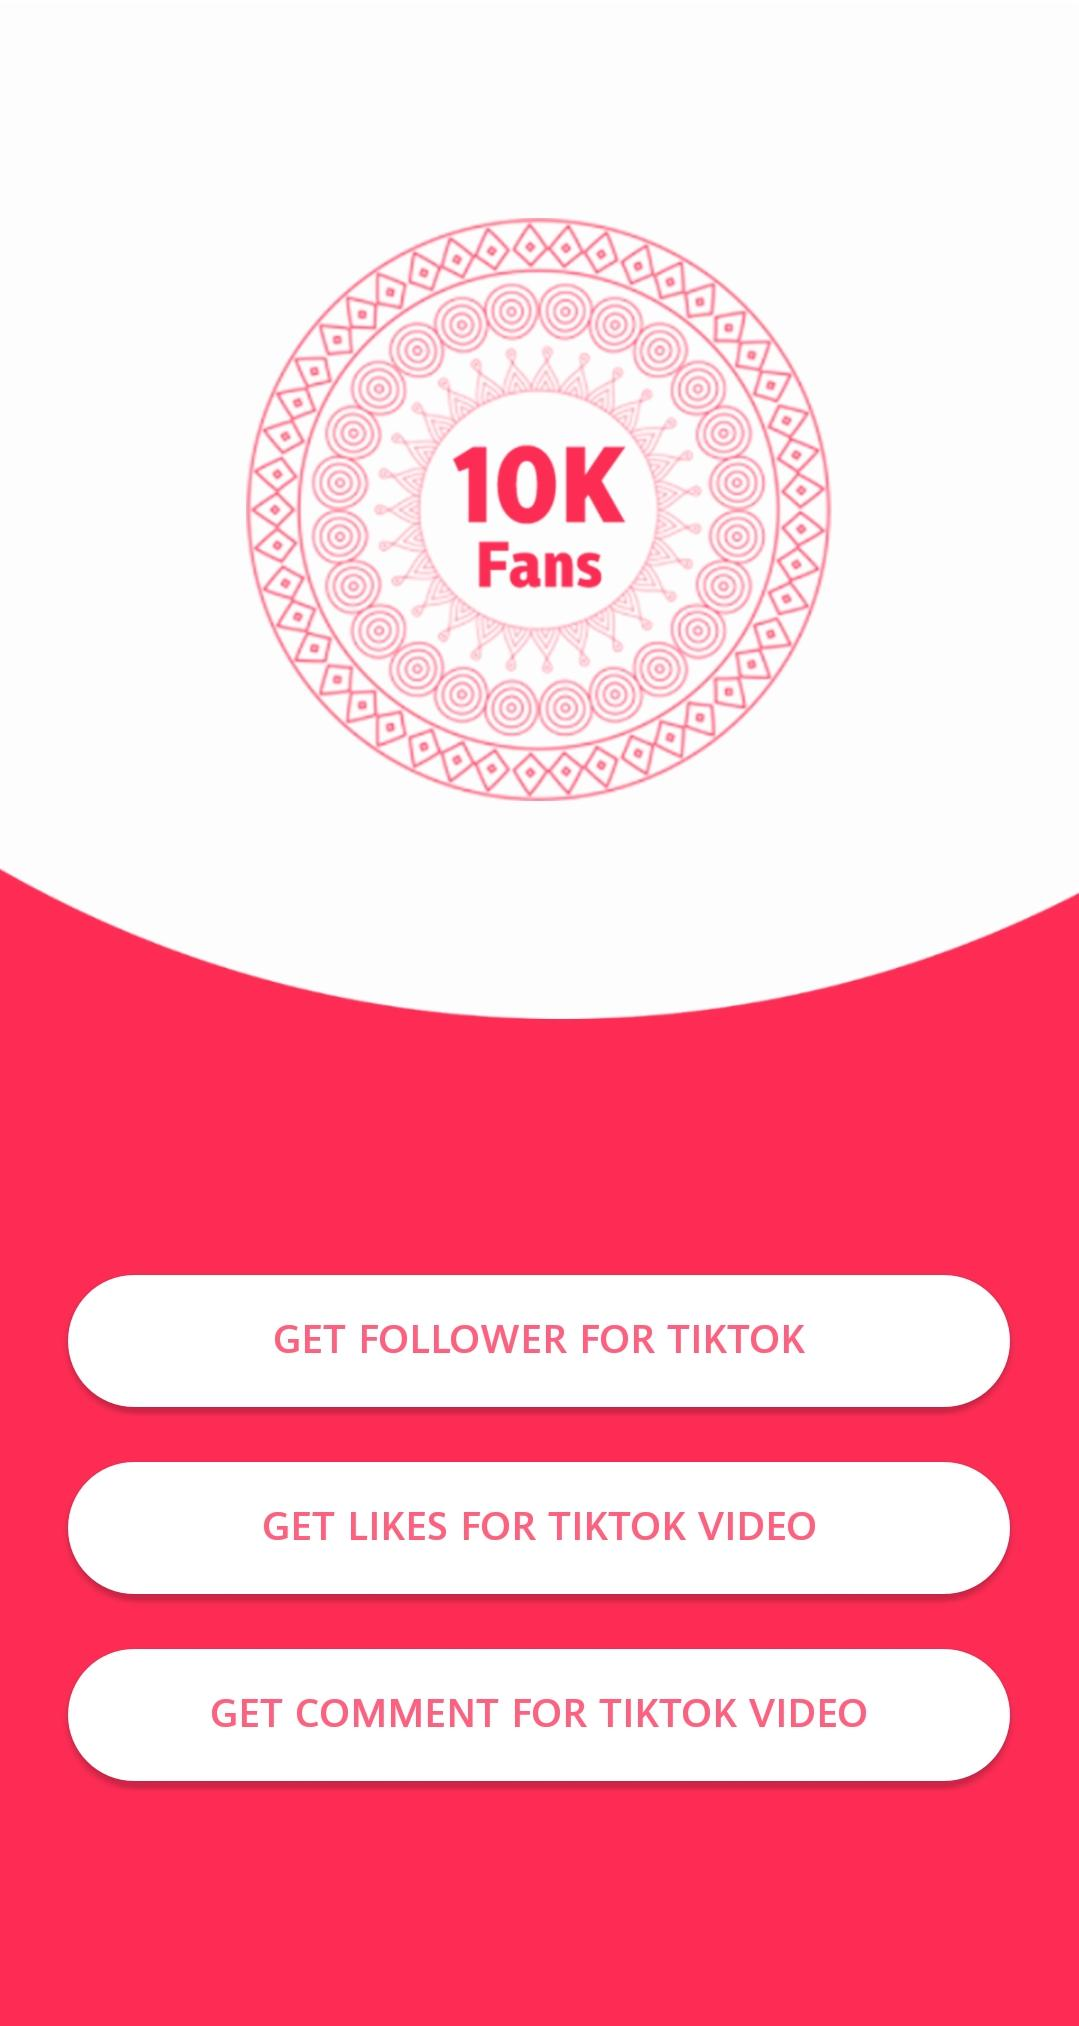 Fans for tik-tok - Likes and Followers for Android - APK